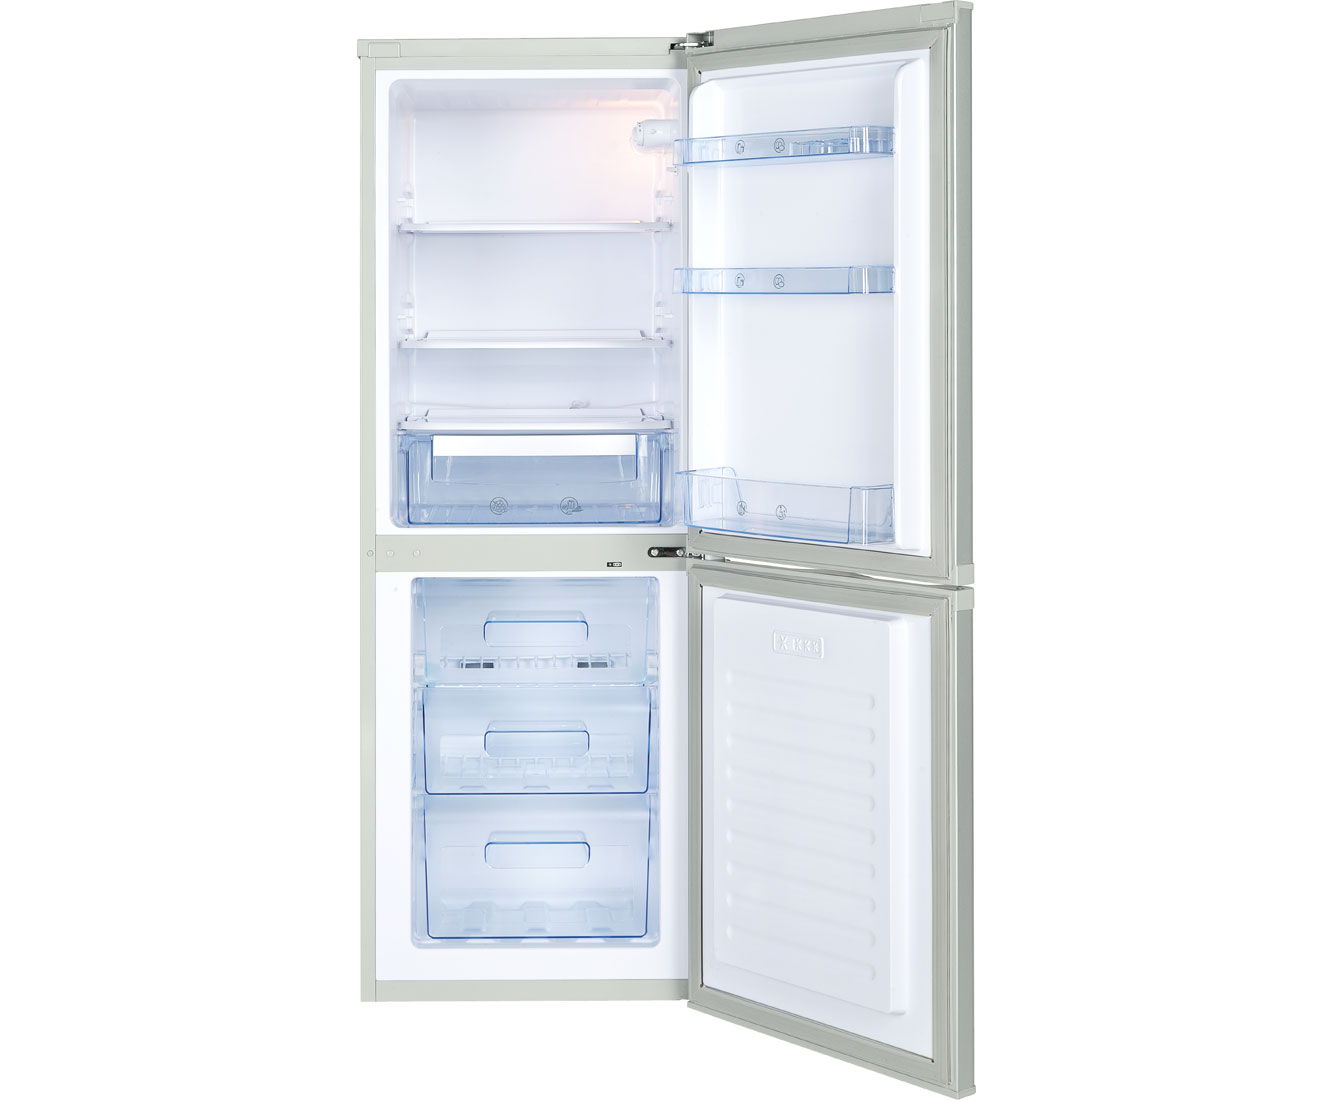 Newworld NWCOMFF5515S Free Standing Fridge Freezer Frost Free in Silver